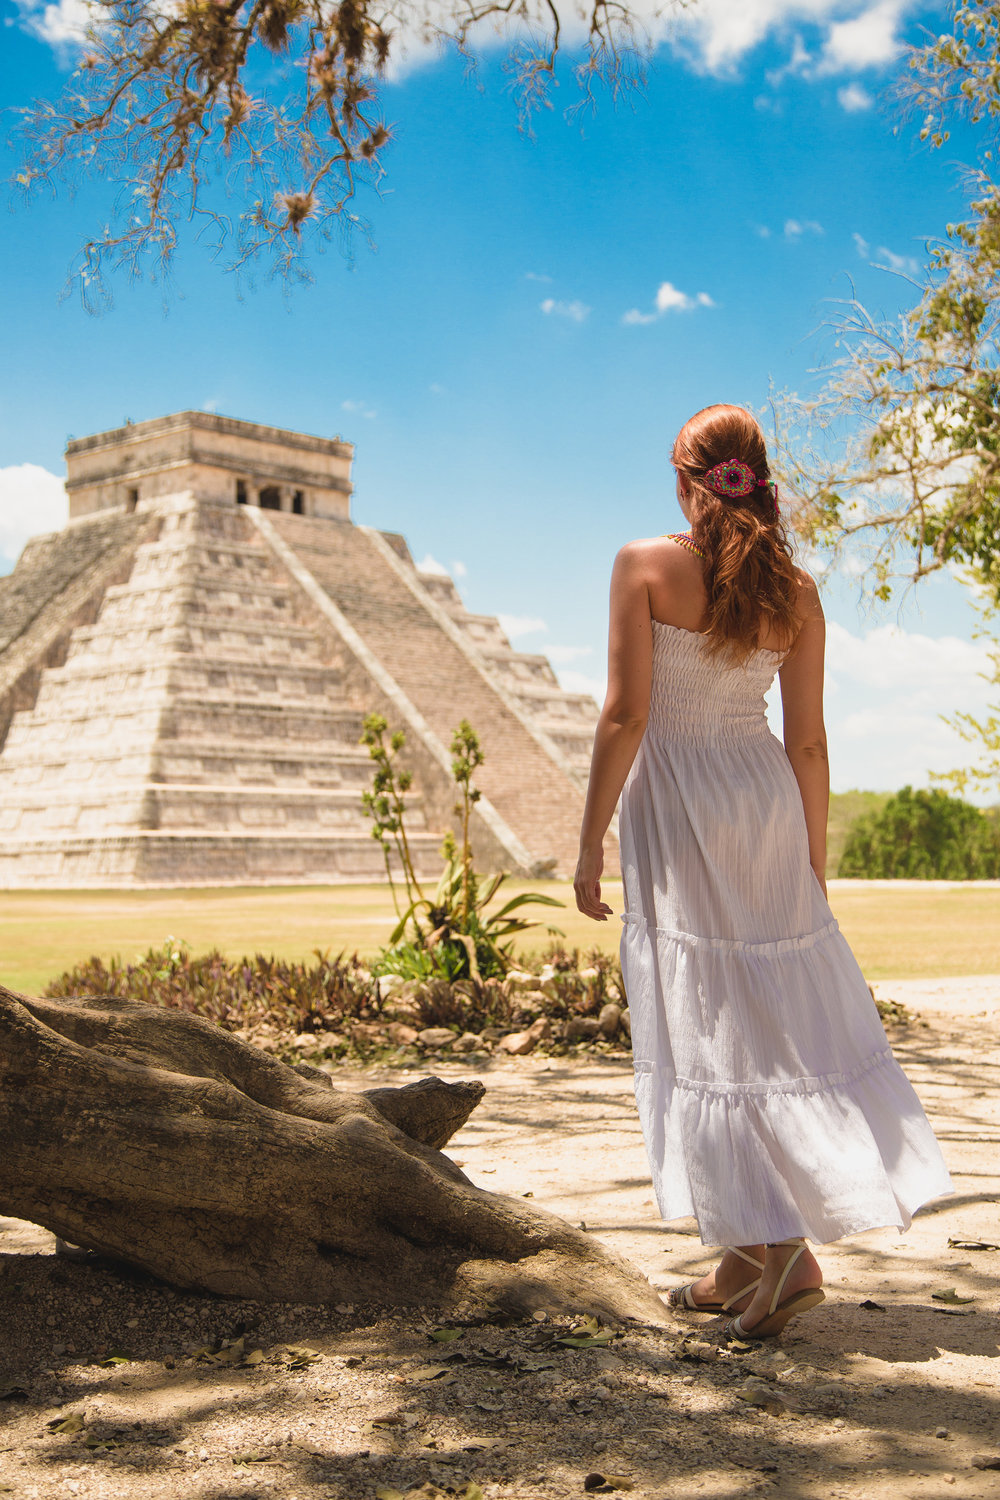 Iana Komarnytska, photographed at Chichen Itza. © 2018. Pedro Bonatto